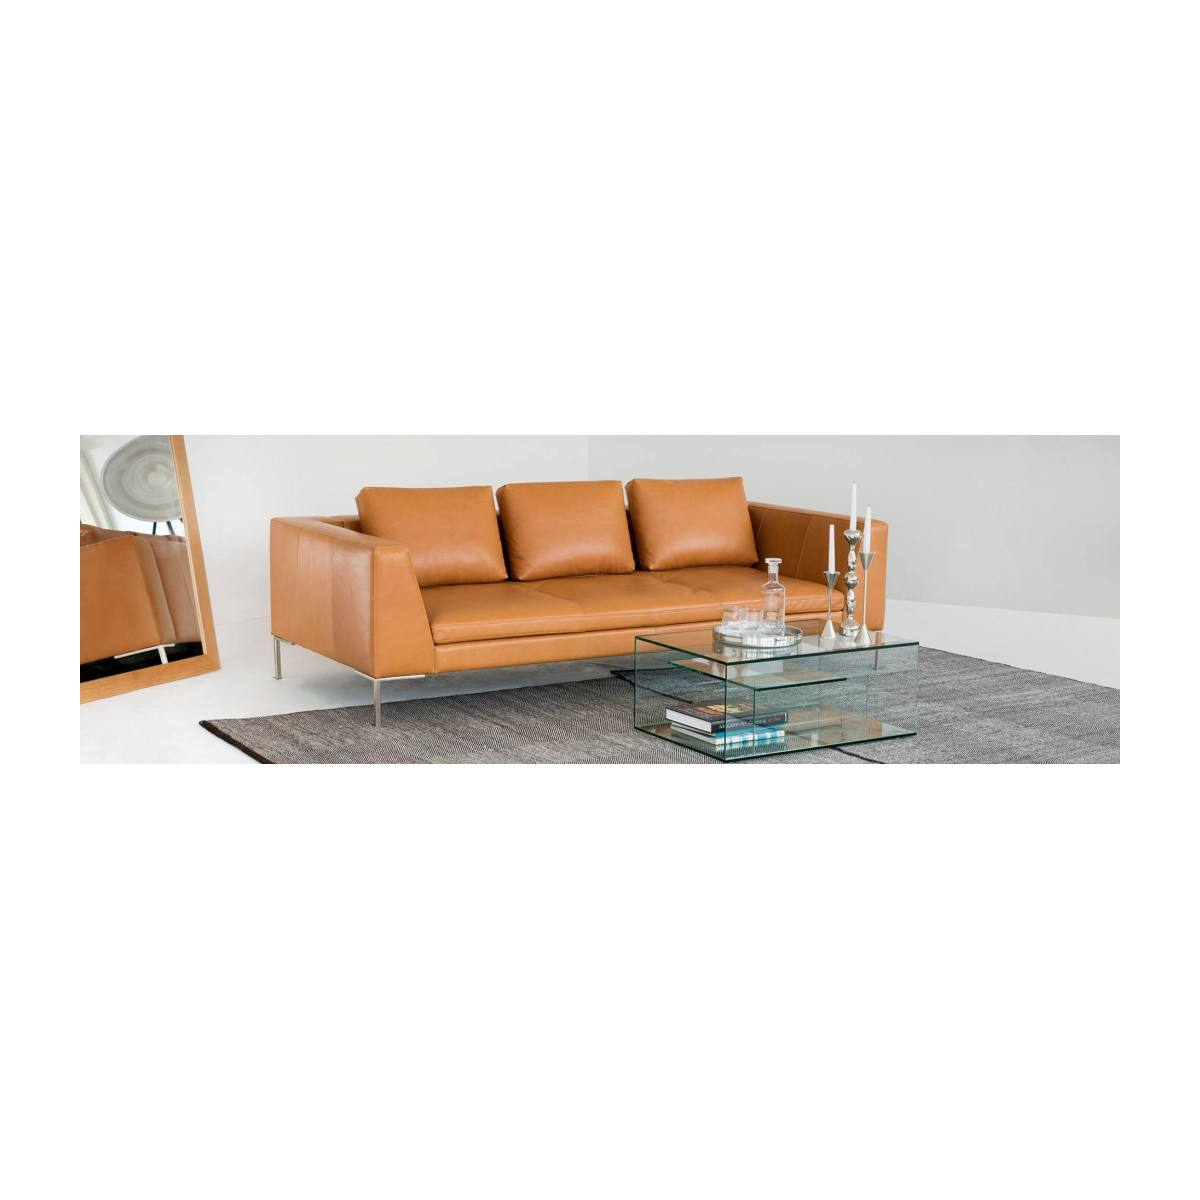 3 seater sofa in Eton veined leather, stone n°11